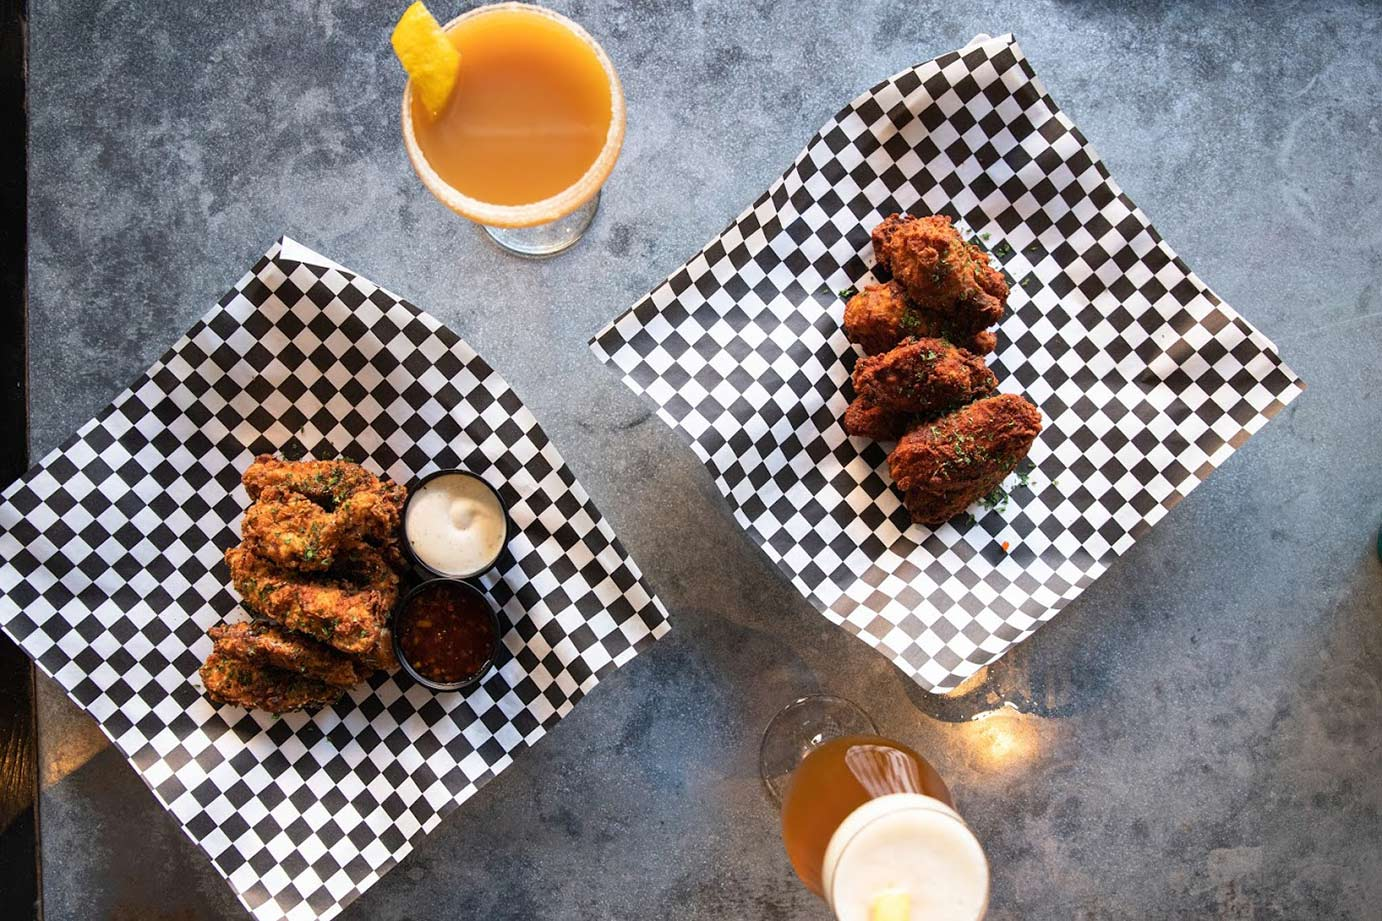 Fried chicken wings with beer and juice